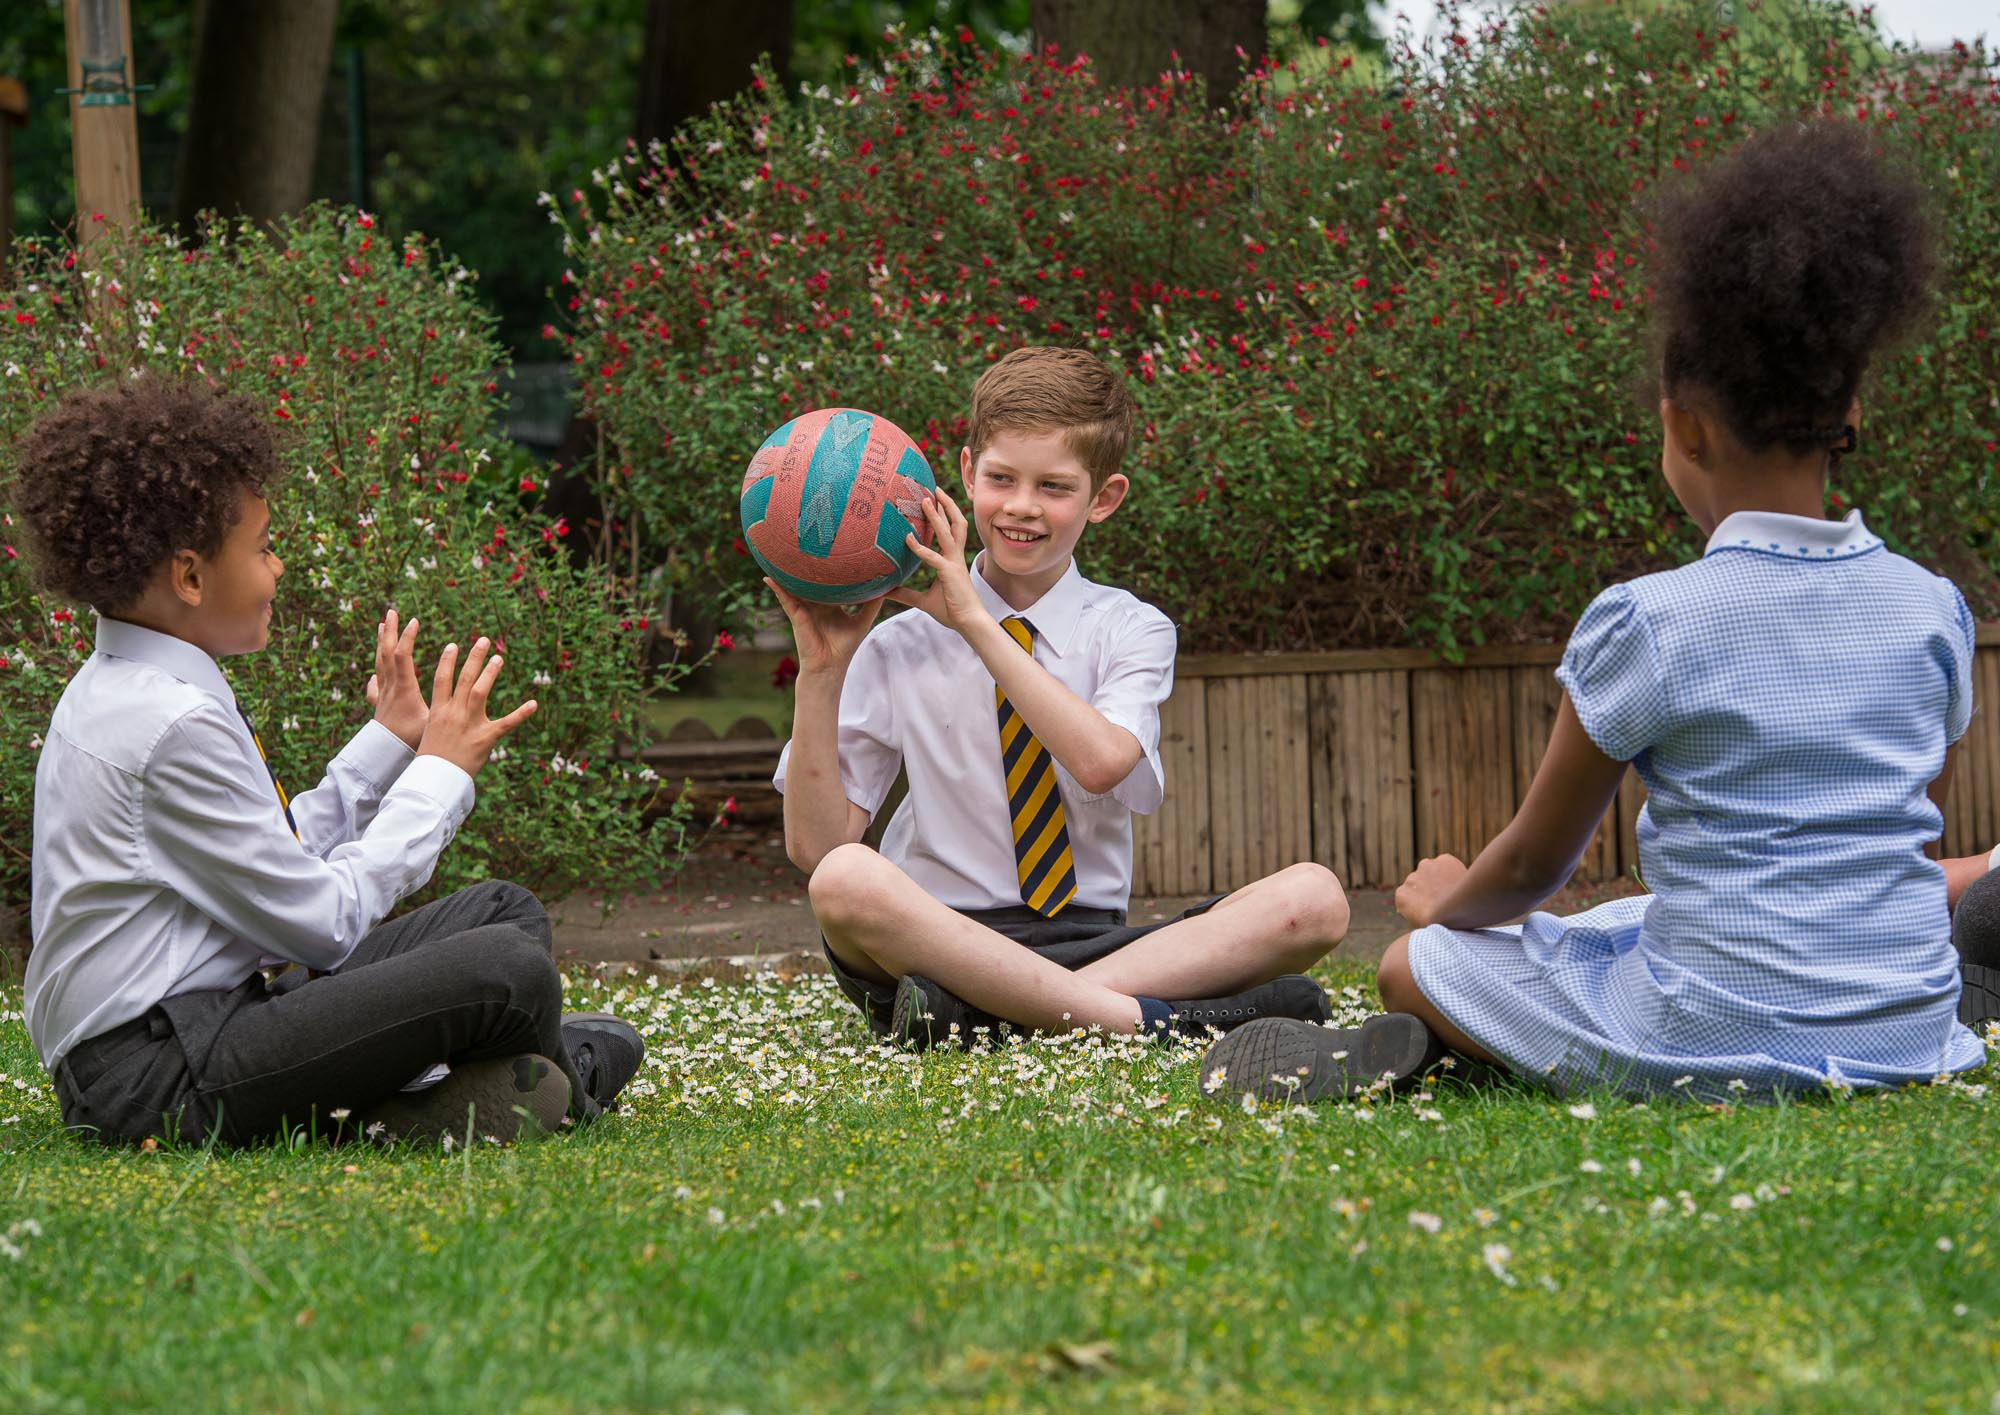 Three children playing ball in the grass